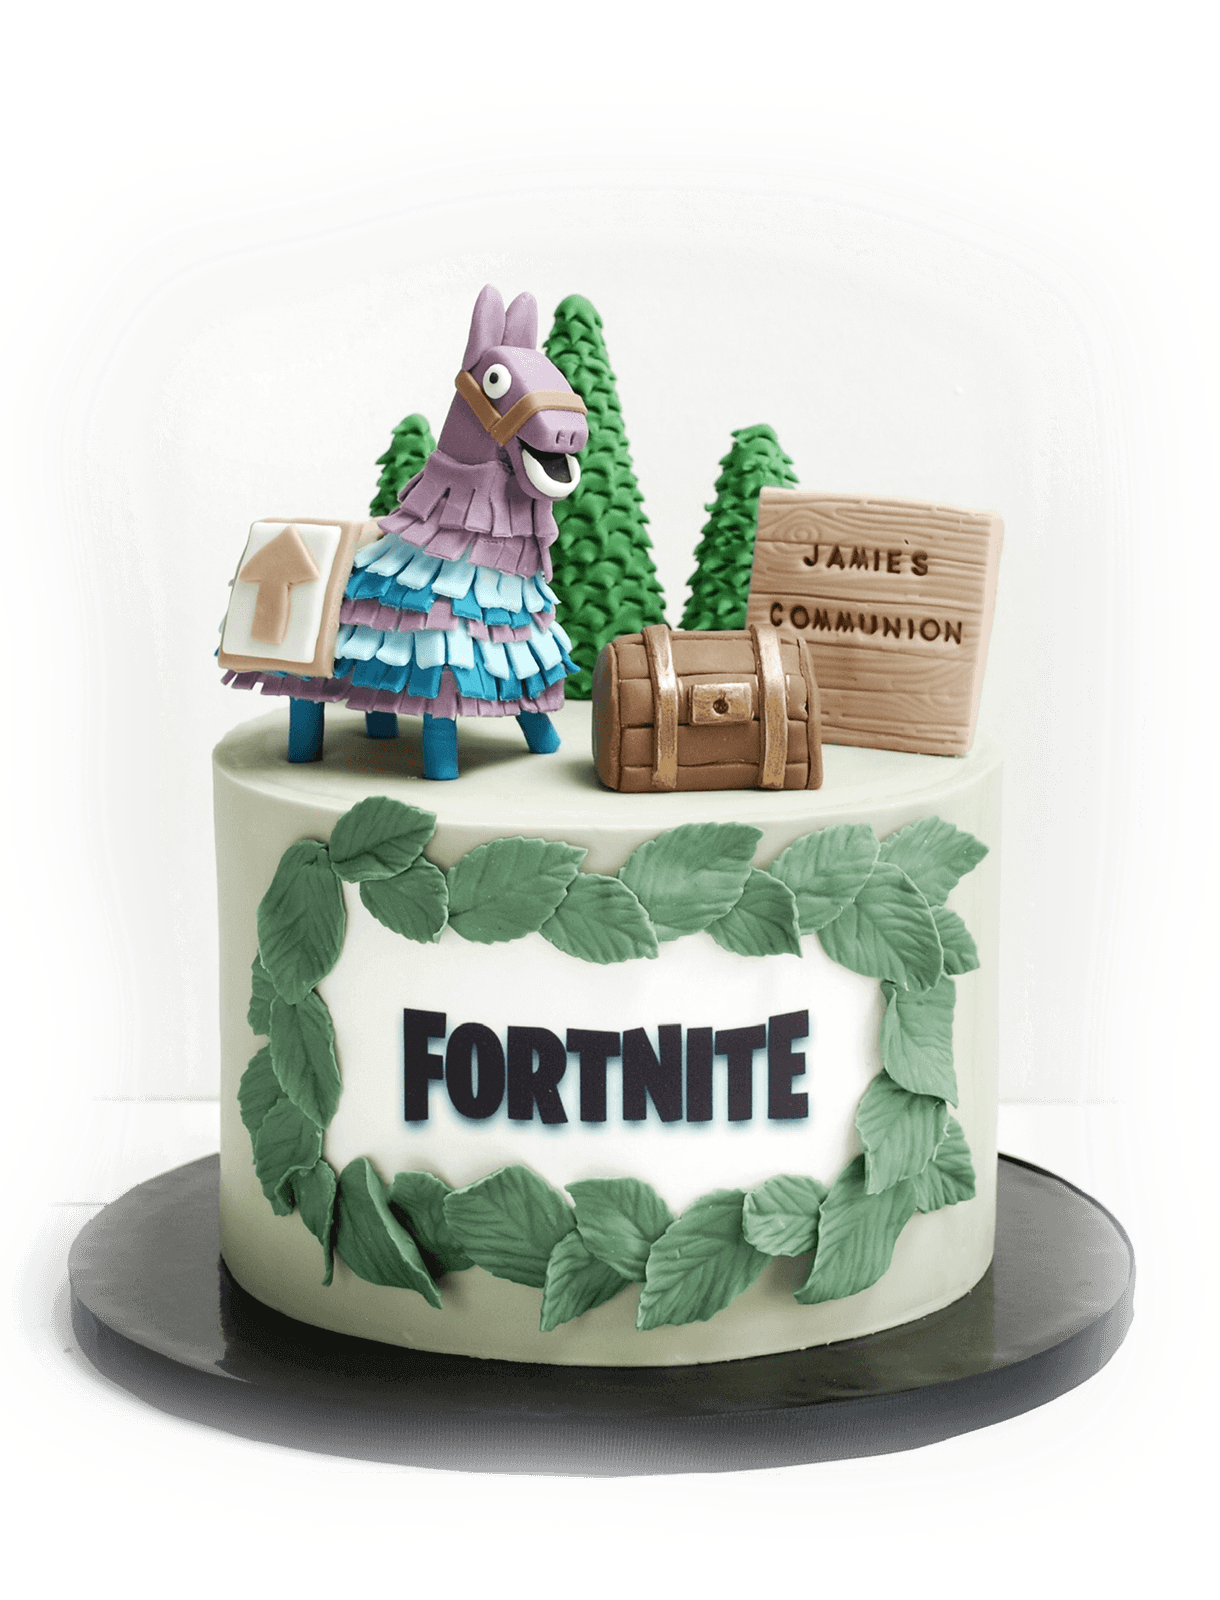 Fortnite Communion Cake?